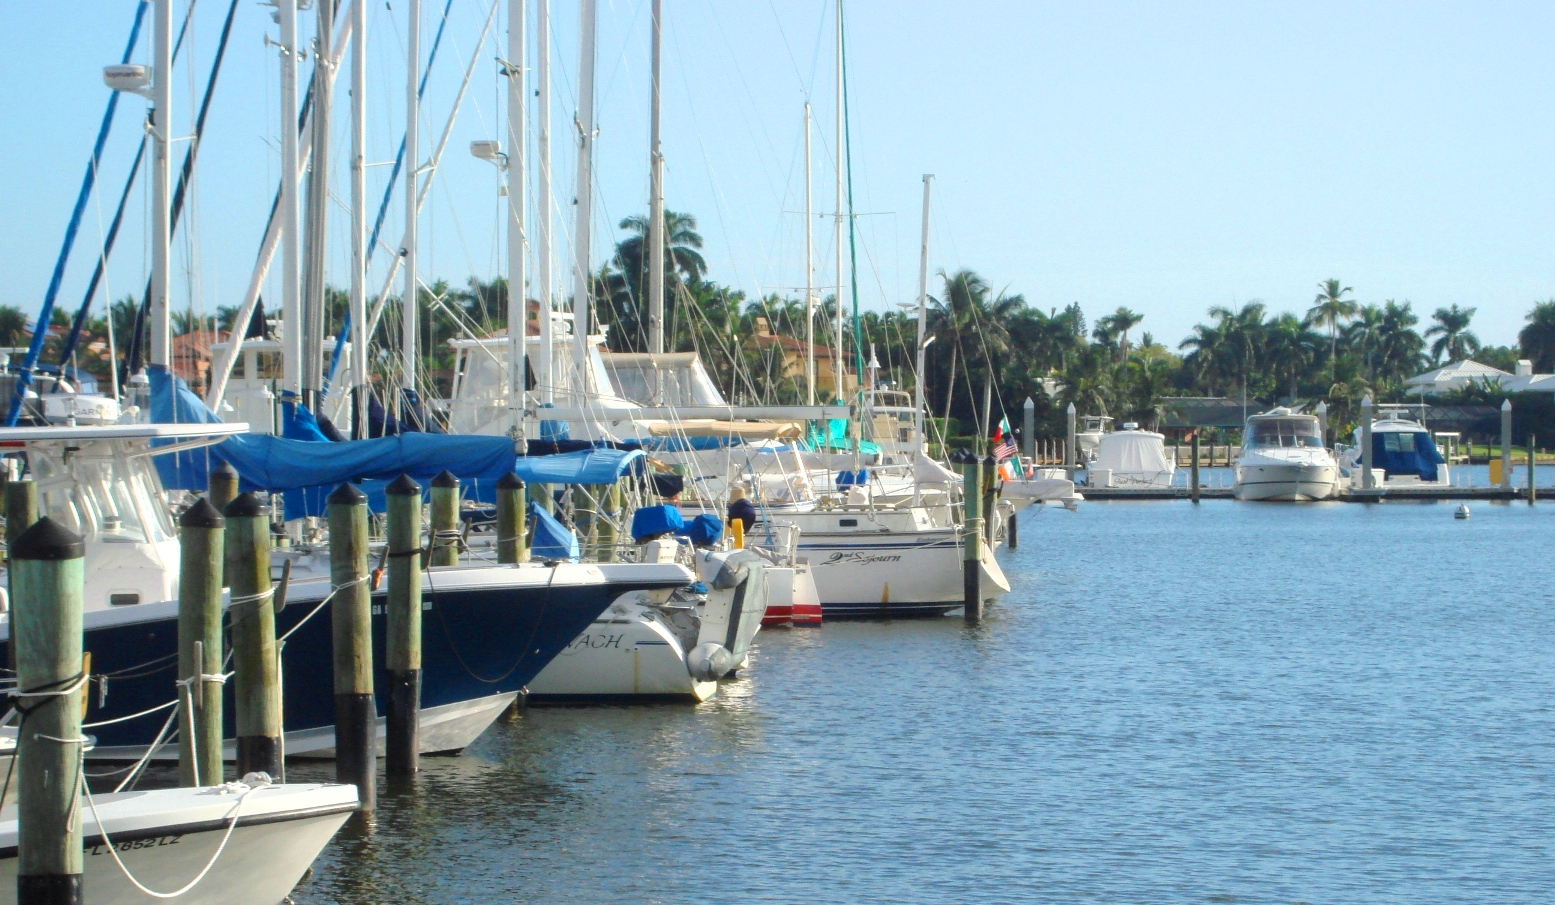 Naples FL - Boating Community - Sailing